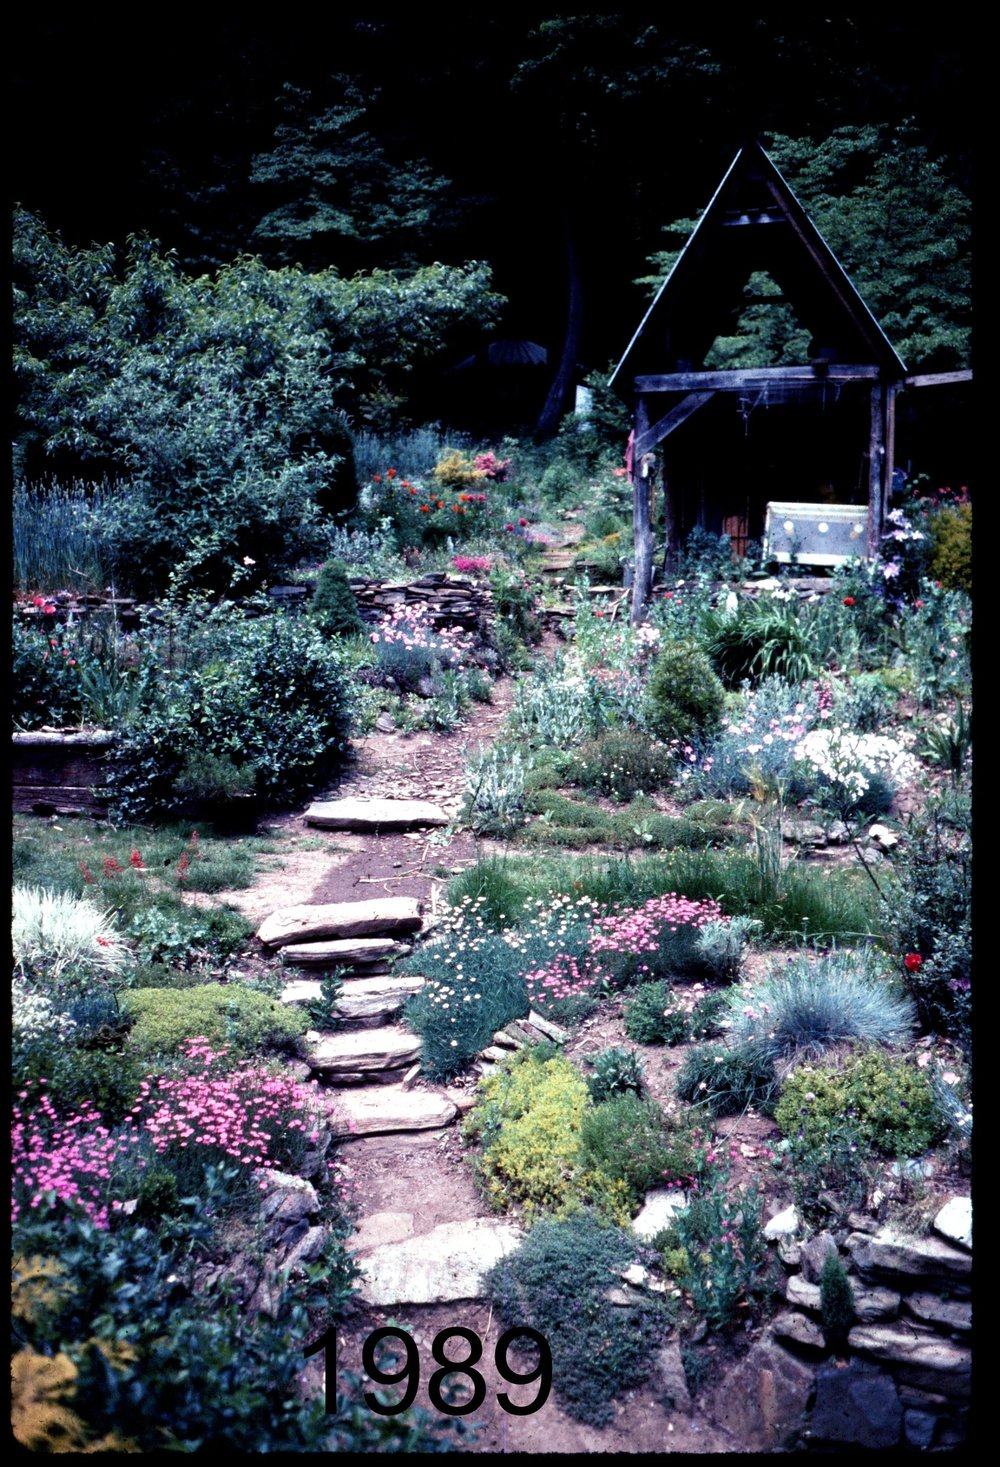 1989 overview shed path w flowers.jpg